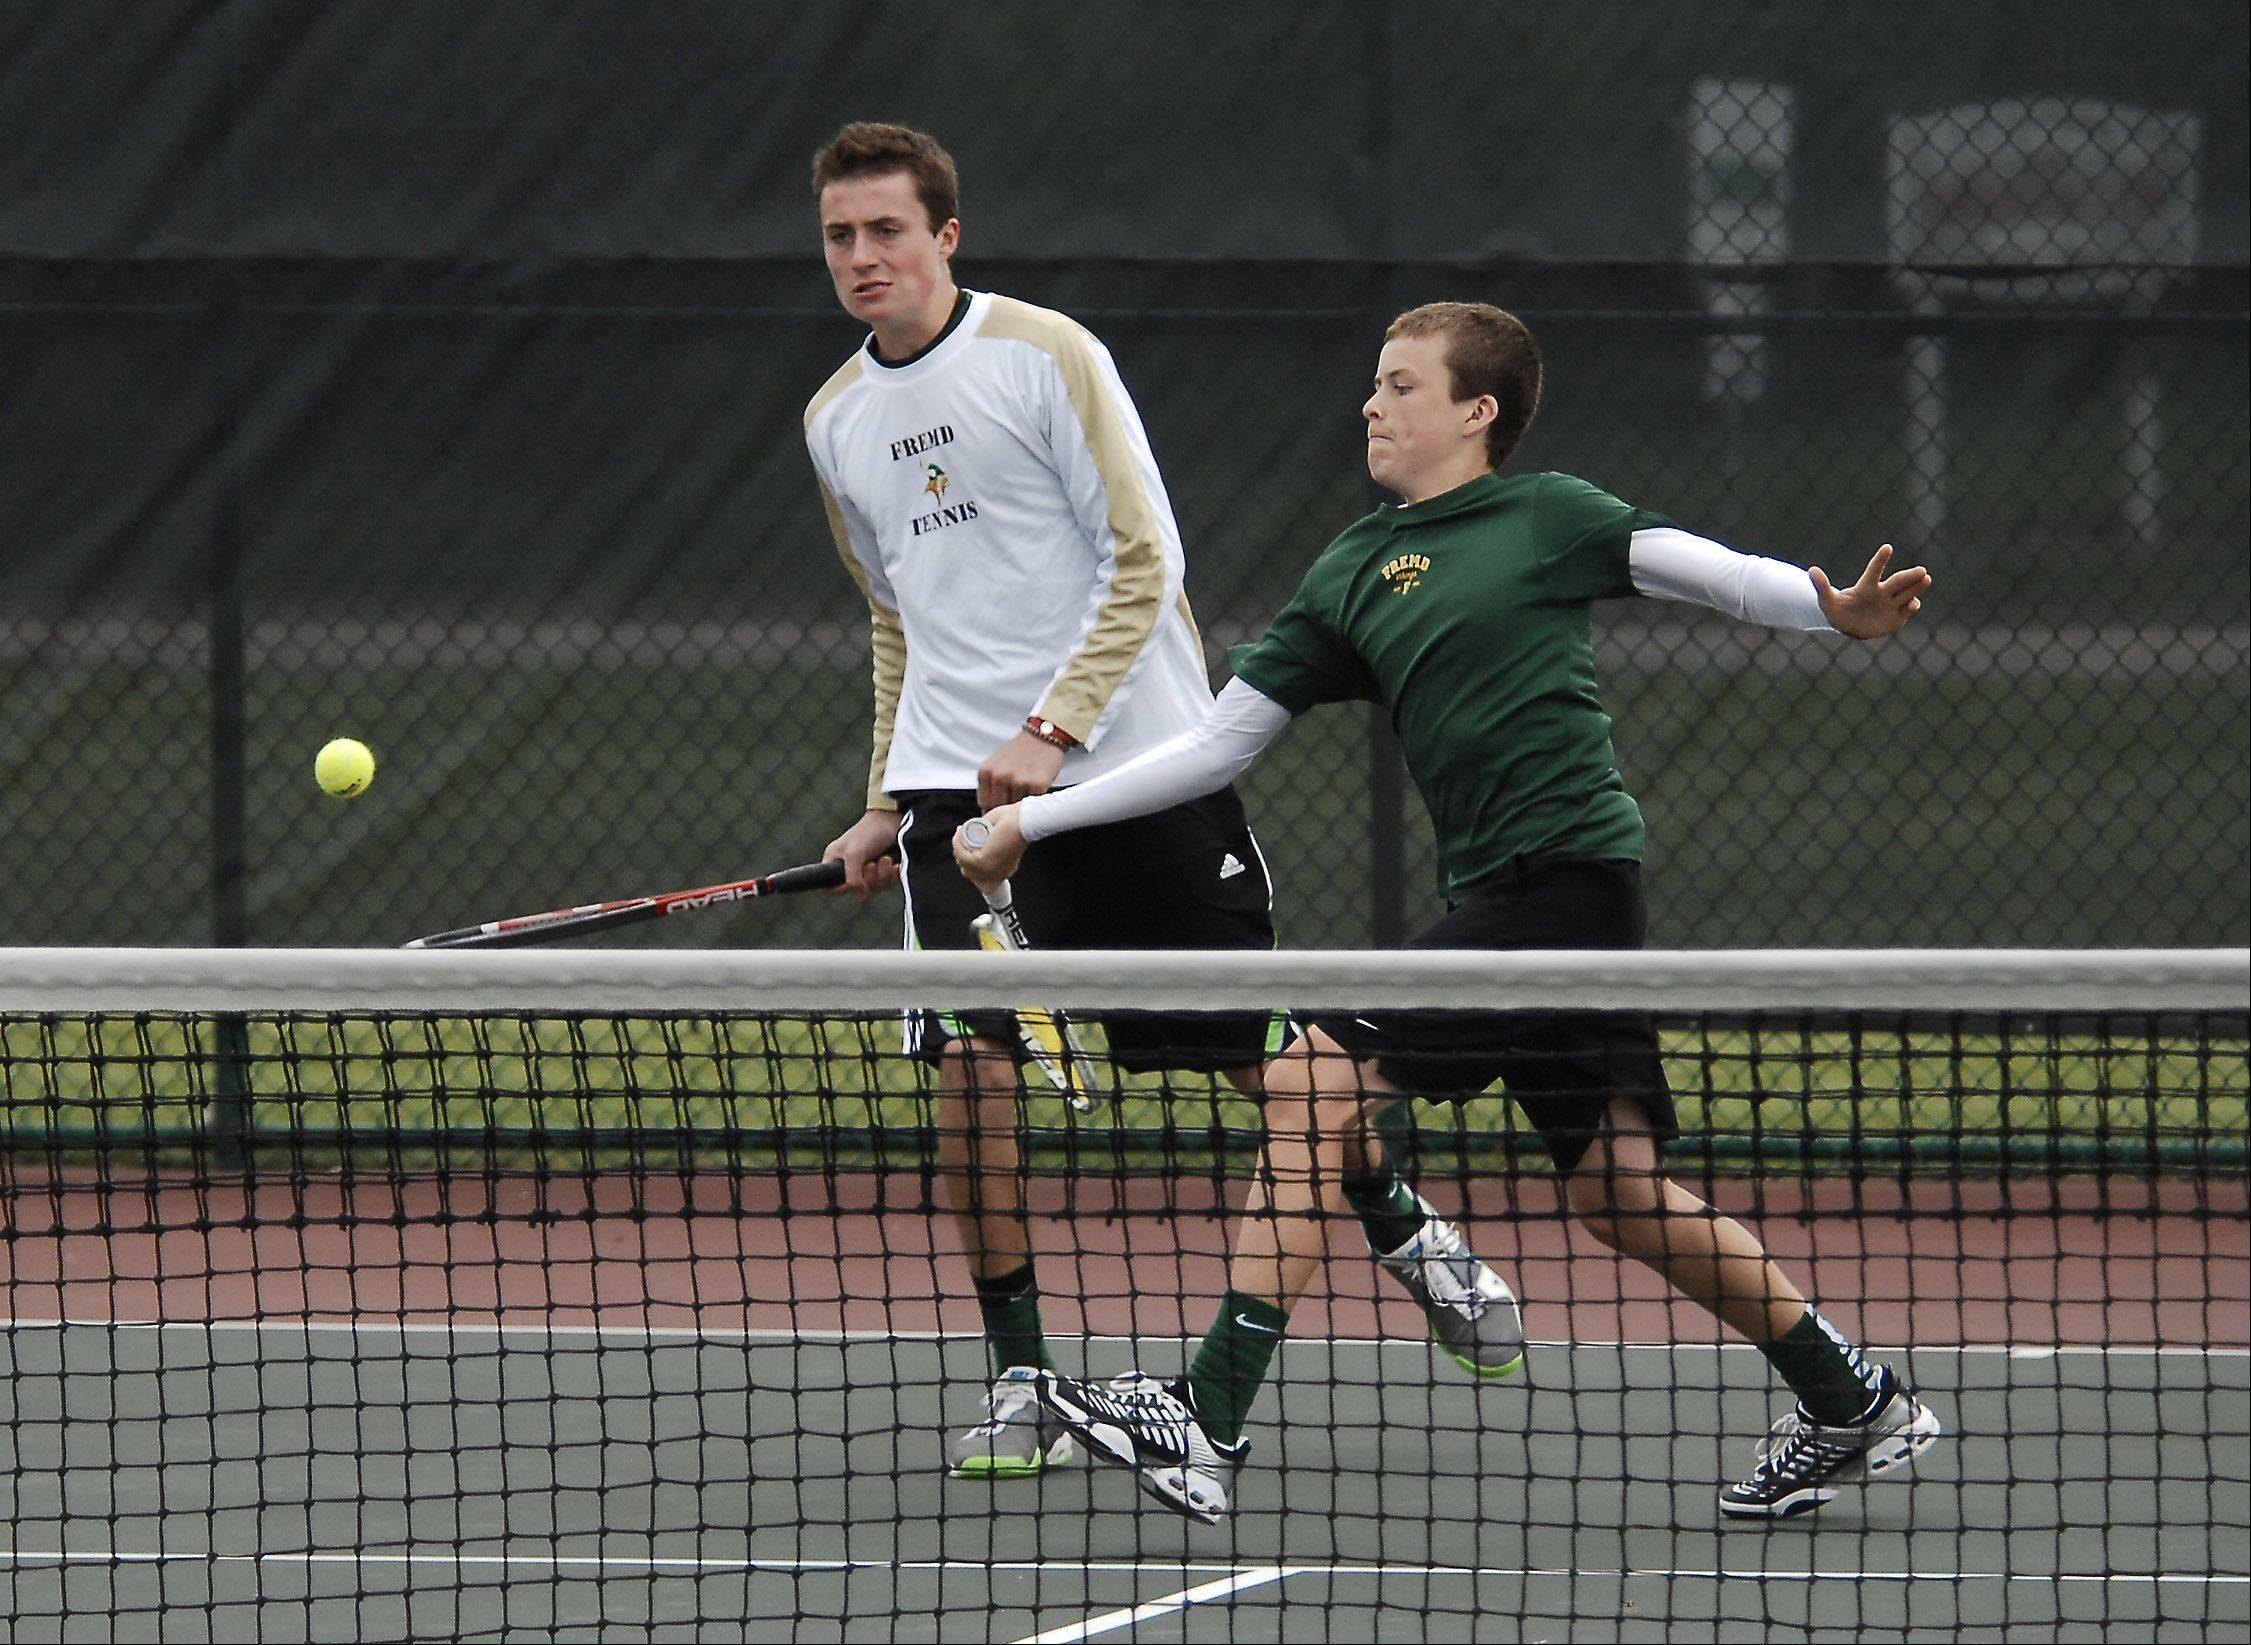 Fremd has a strong chance to defend its Mid-Suburban League boys tennis title with the return of Erik Rosencrans, who sends a shot back at last season's state tournament with doubles partner Joe Cantieri.